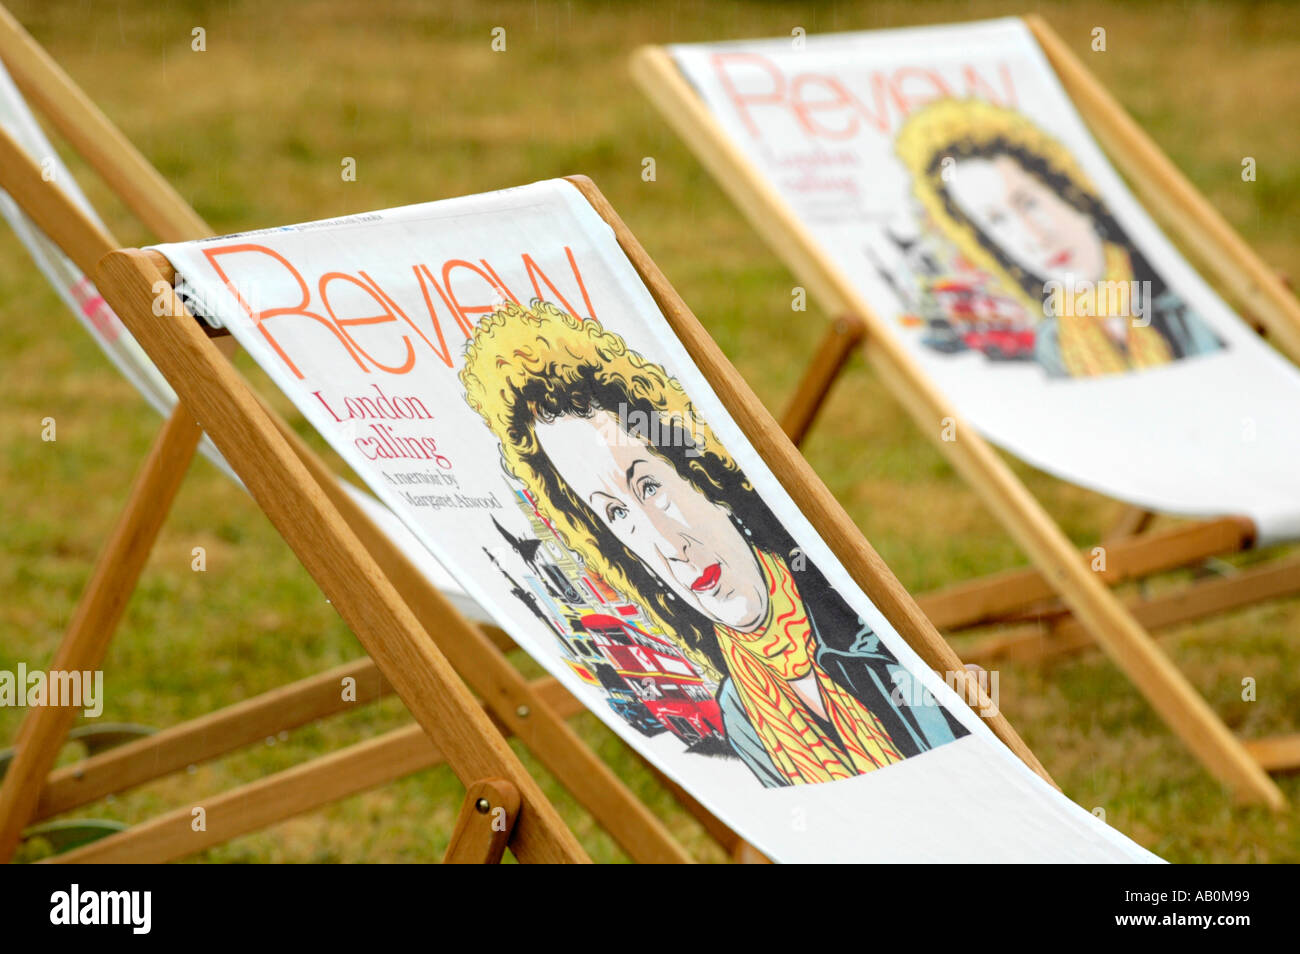 Promotional deckchairs with graphic of Margaret Atwood on The Guardian Hay Festival 2005 site Hay on Wye Powys Wales UK - Stock Image